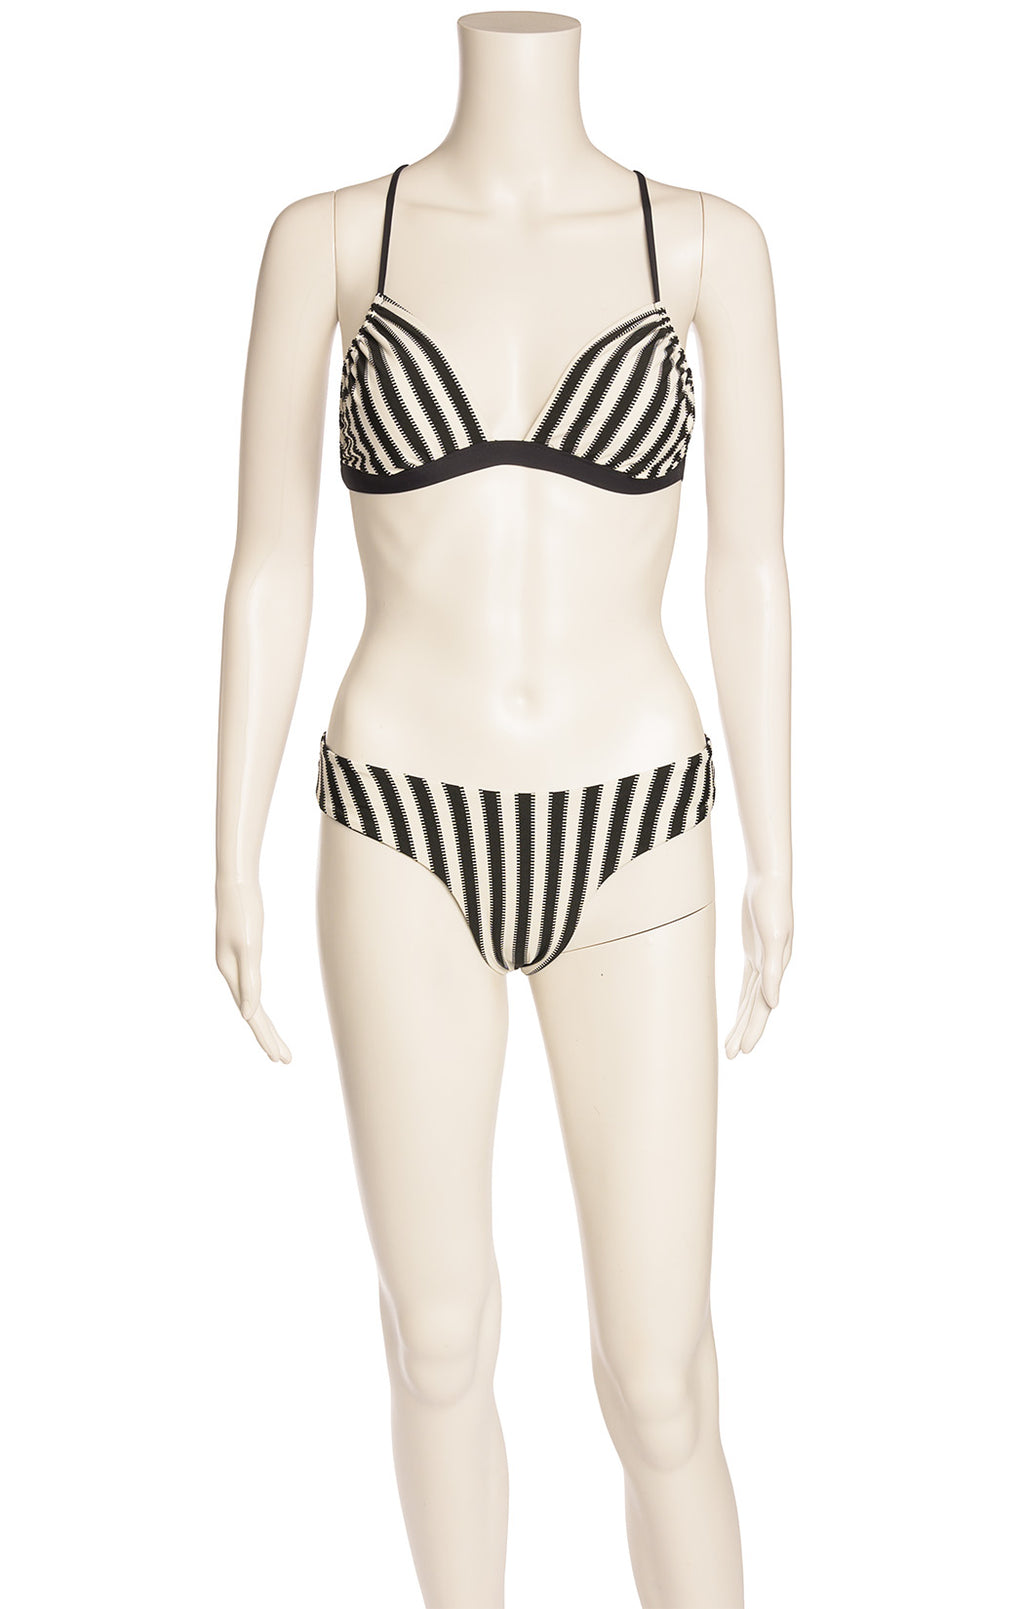 Front view of KYA SWIM with tags Bikini Size: Small